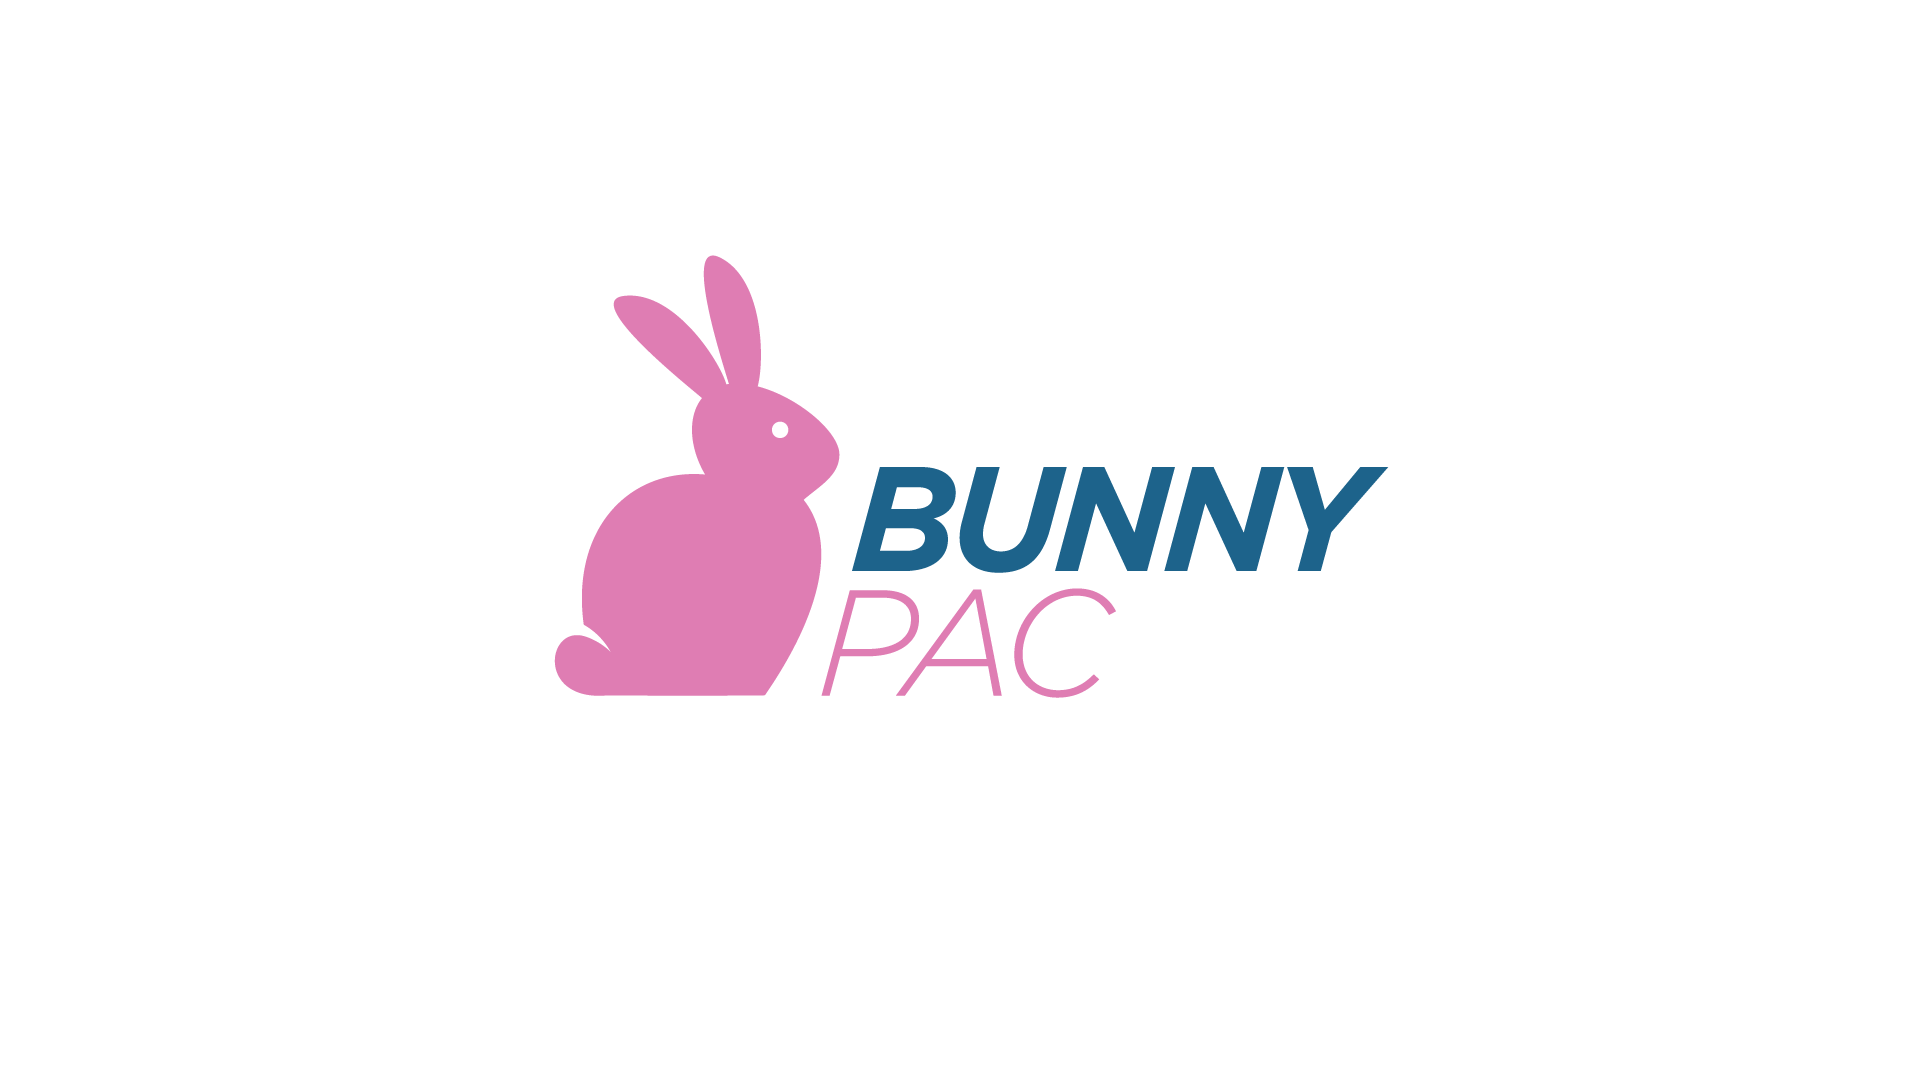 BunnyPAC.png